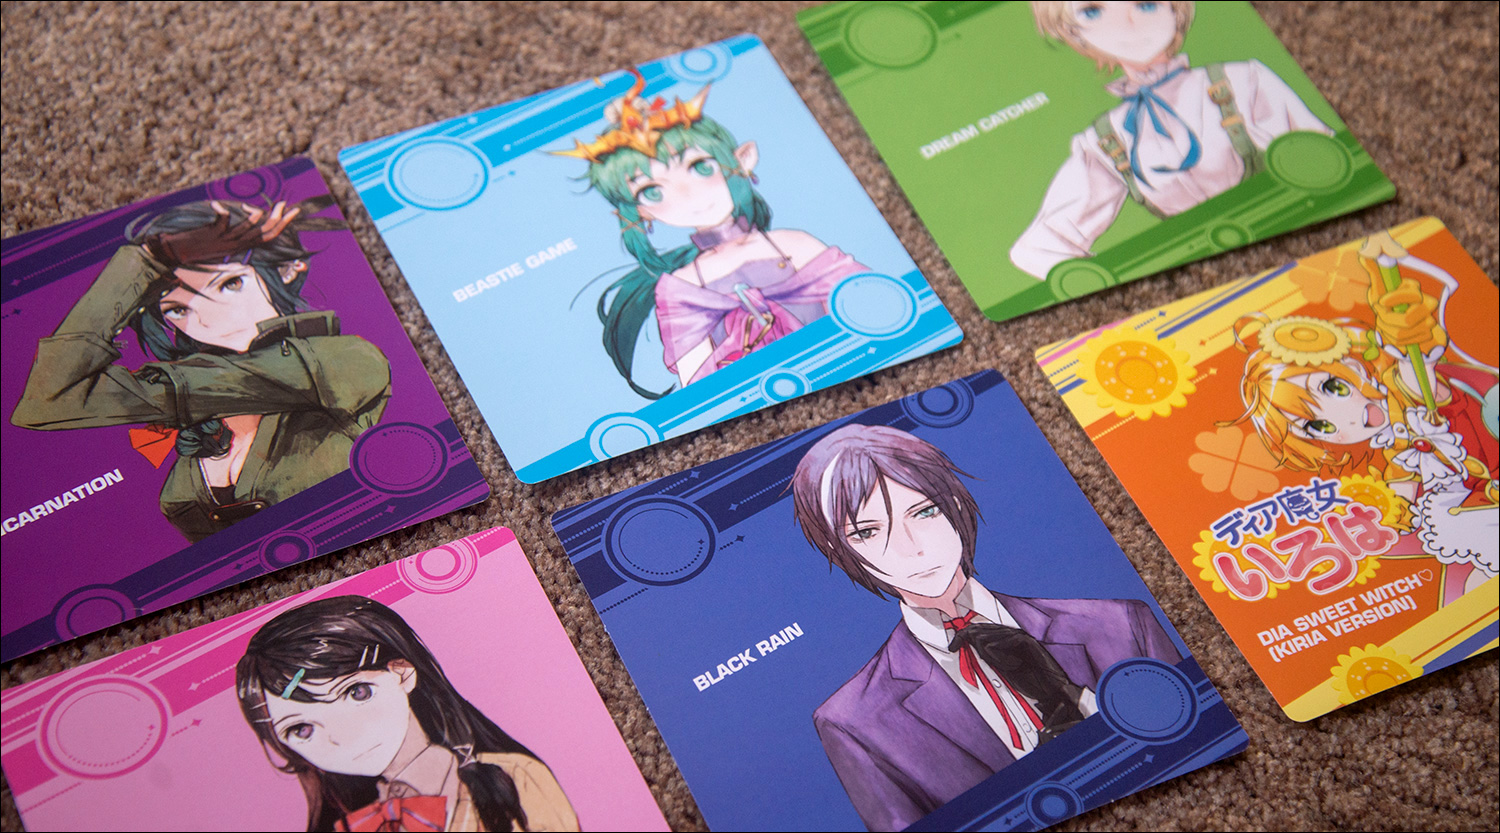 Tokyo-Mirage-Sessions-FE-Fortissimo-Edition-Song-Cards